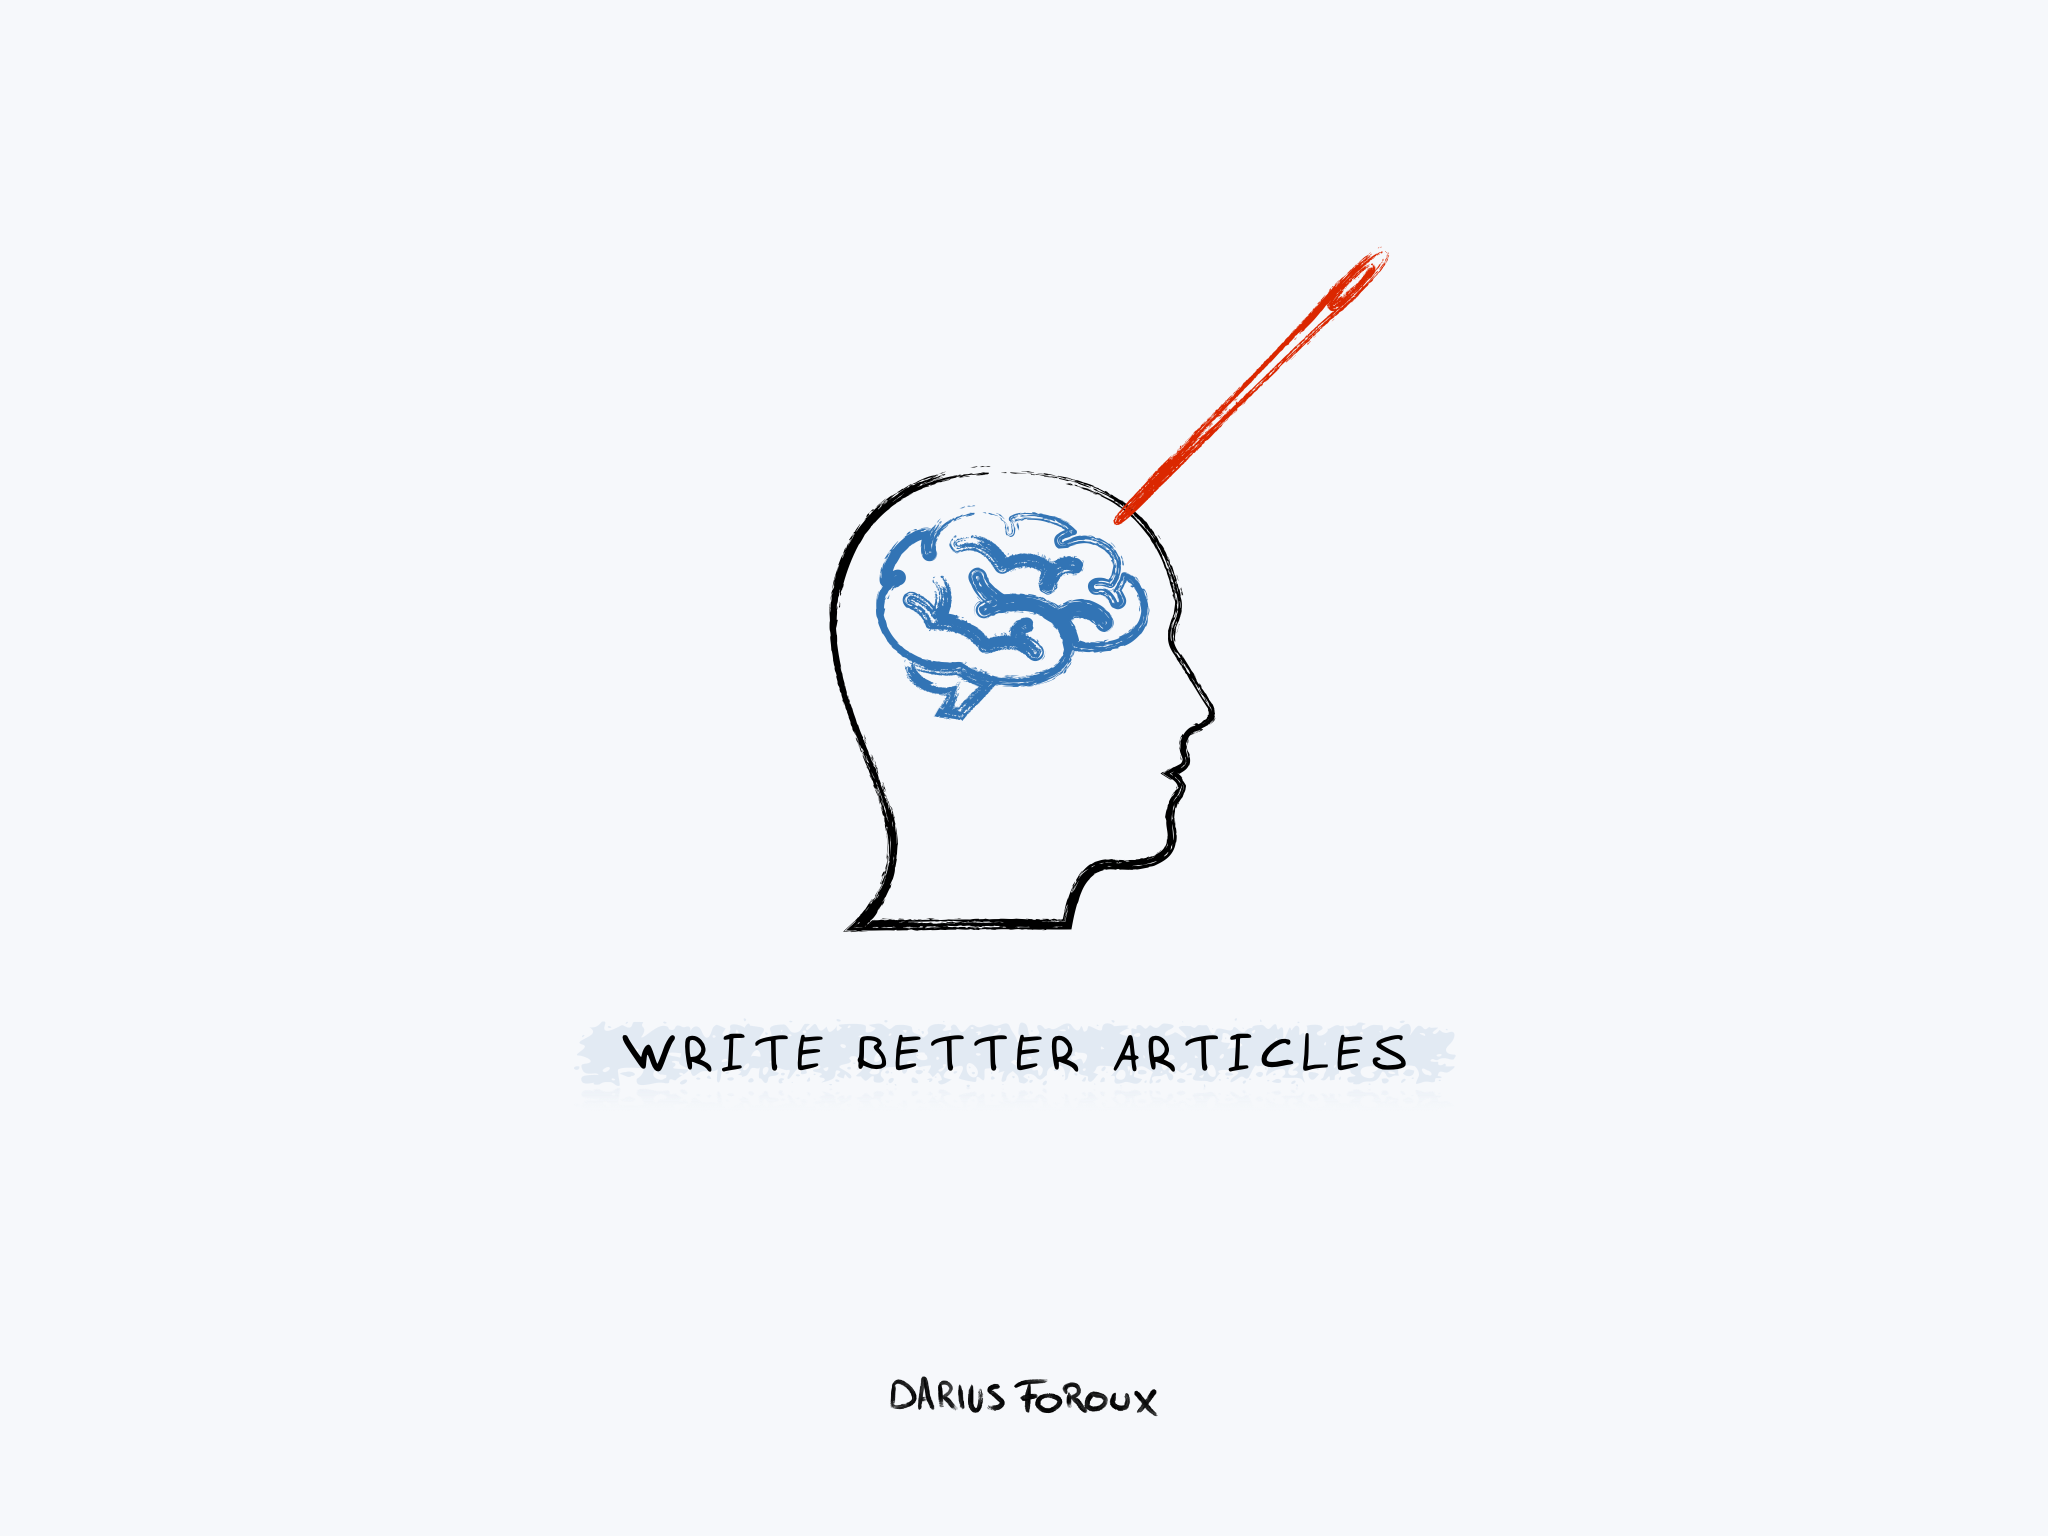 10 Rules For Writing Thought-Provoking Articles